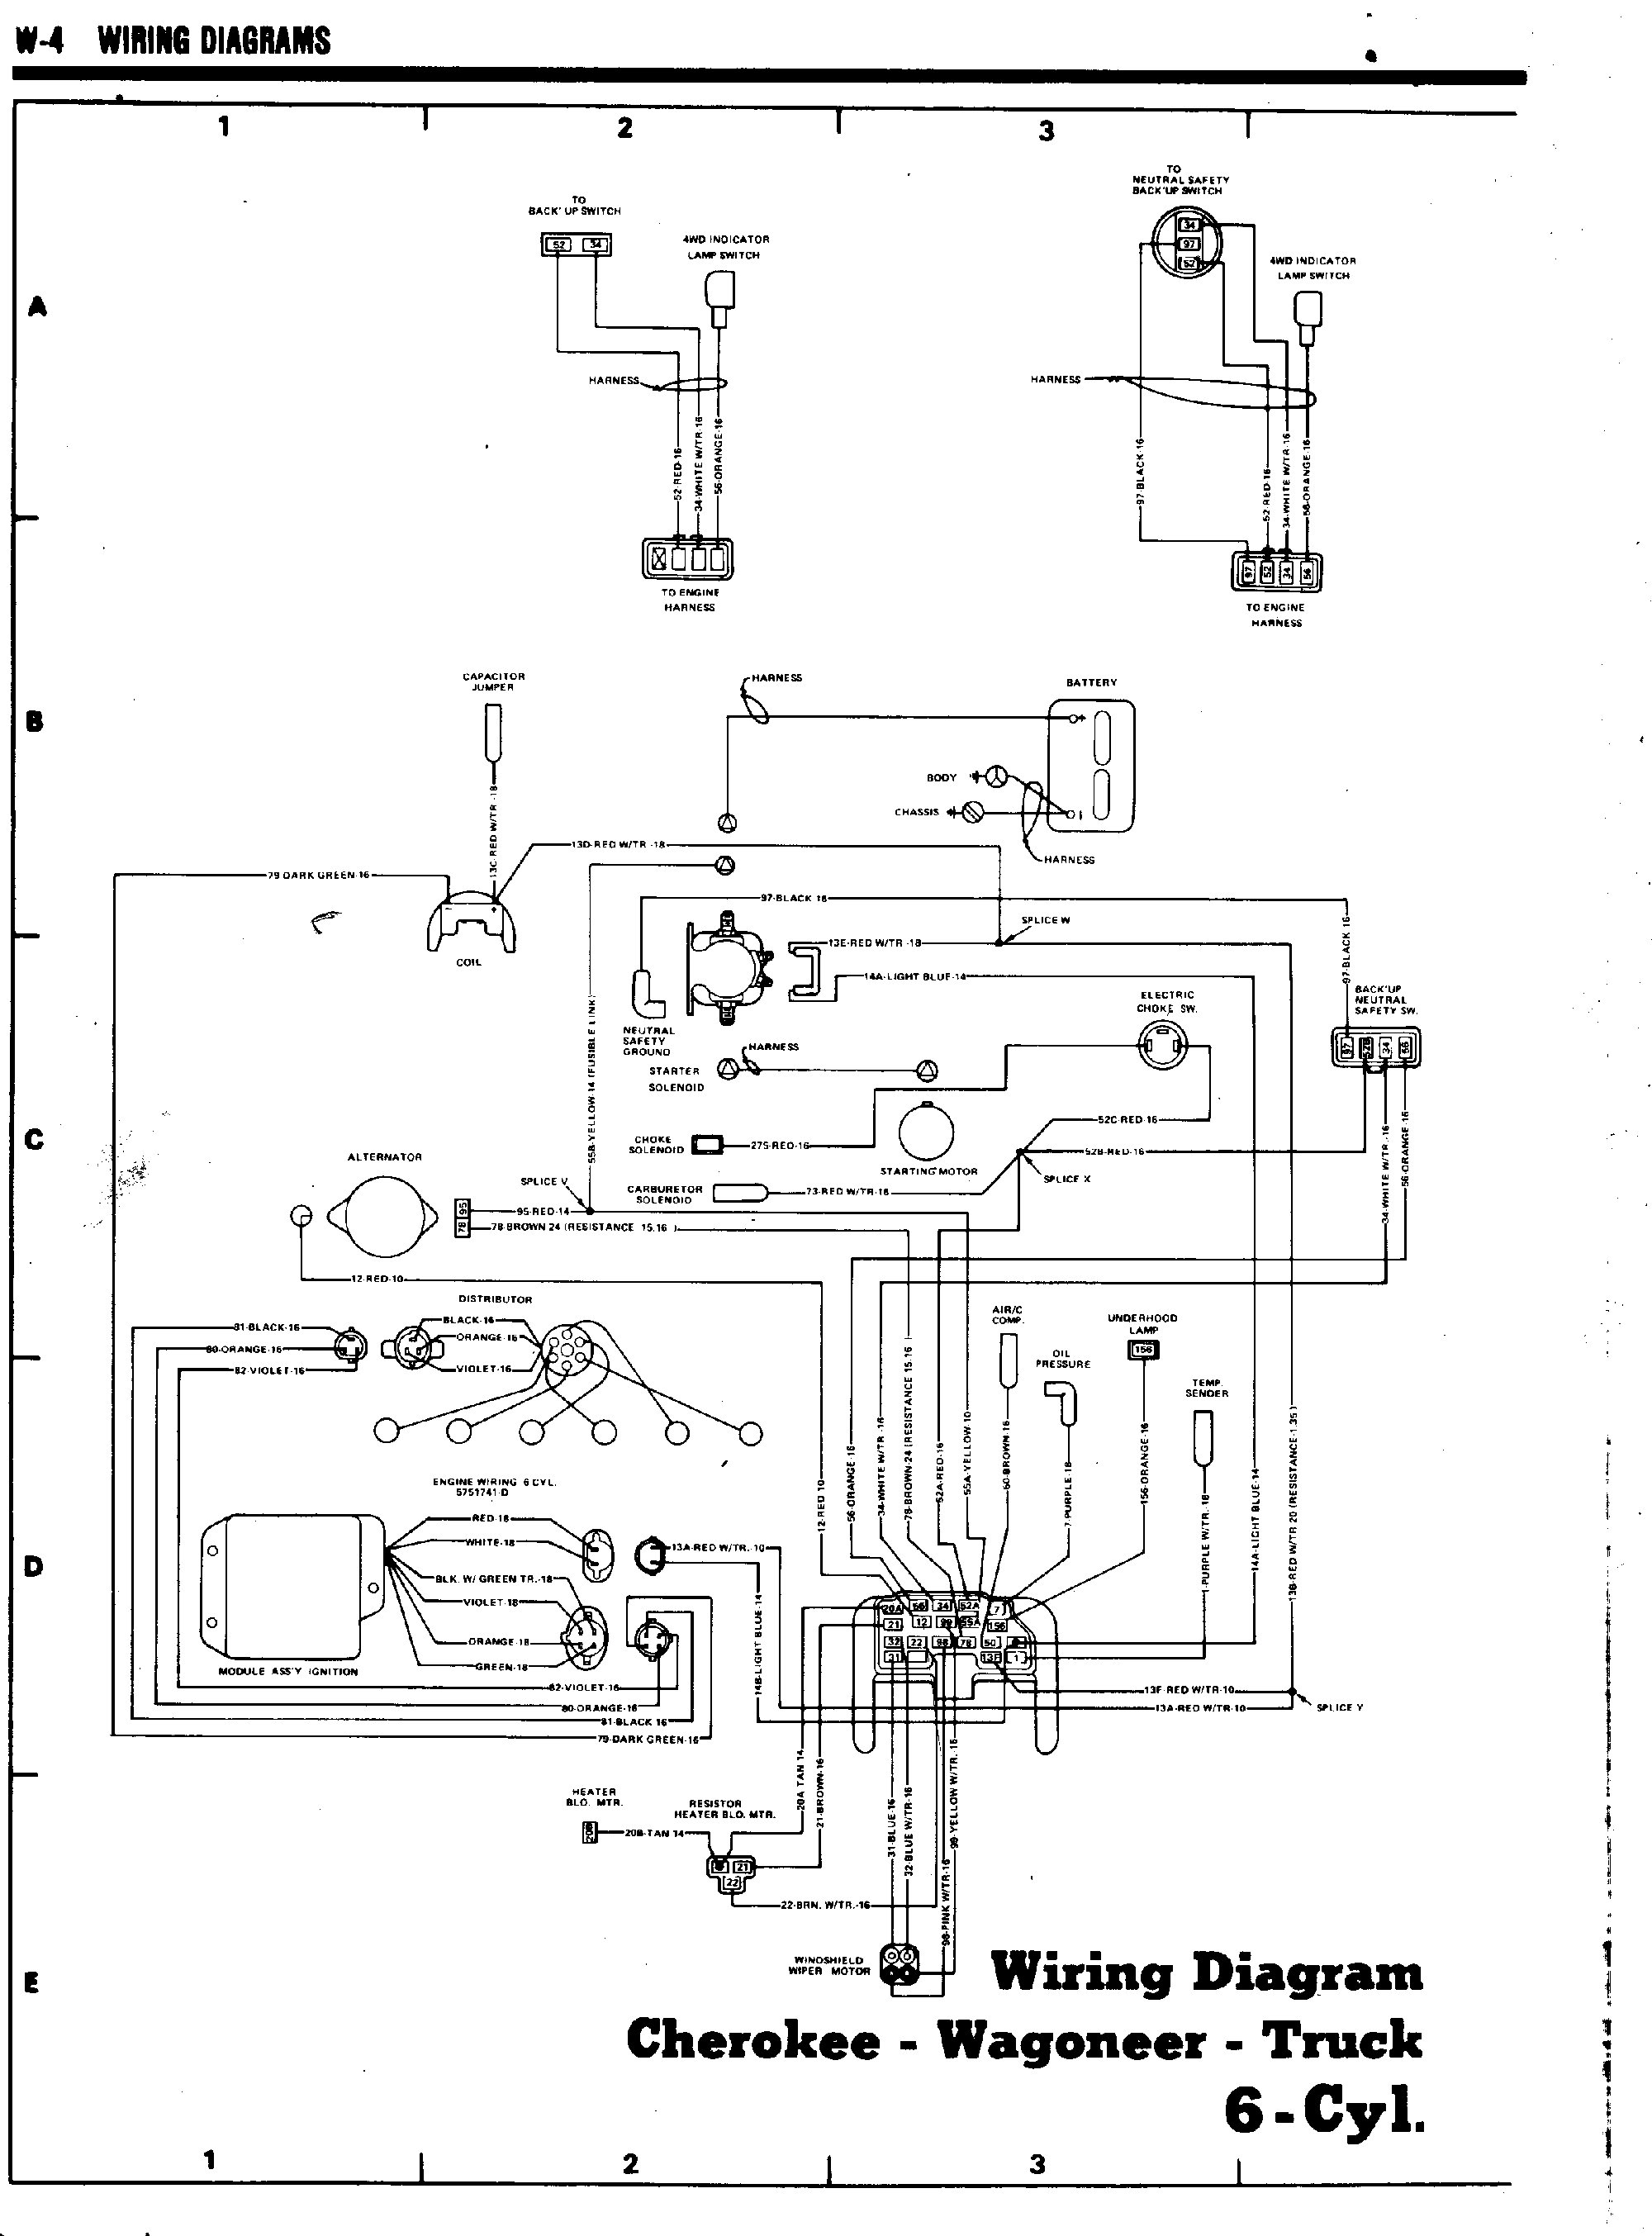 tom oljeep collins fsj wiring page rh oljeep com 1951 Willys Pickup Wiring Diagram Motorola Alternator Wiring Diagram